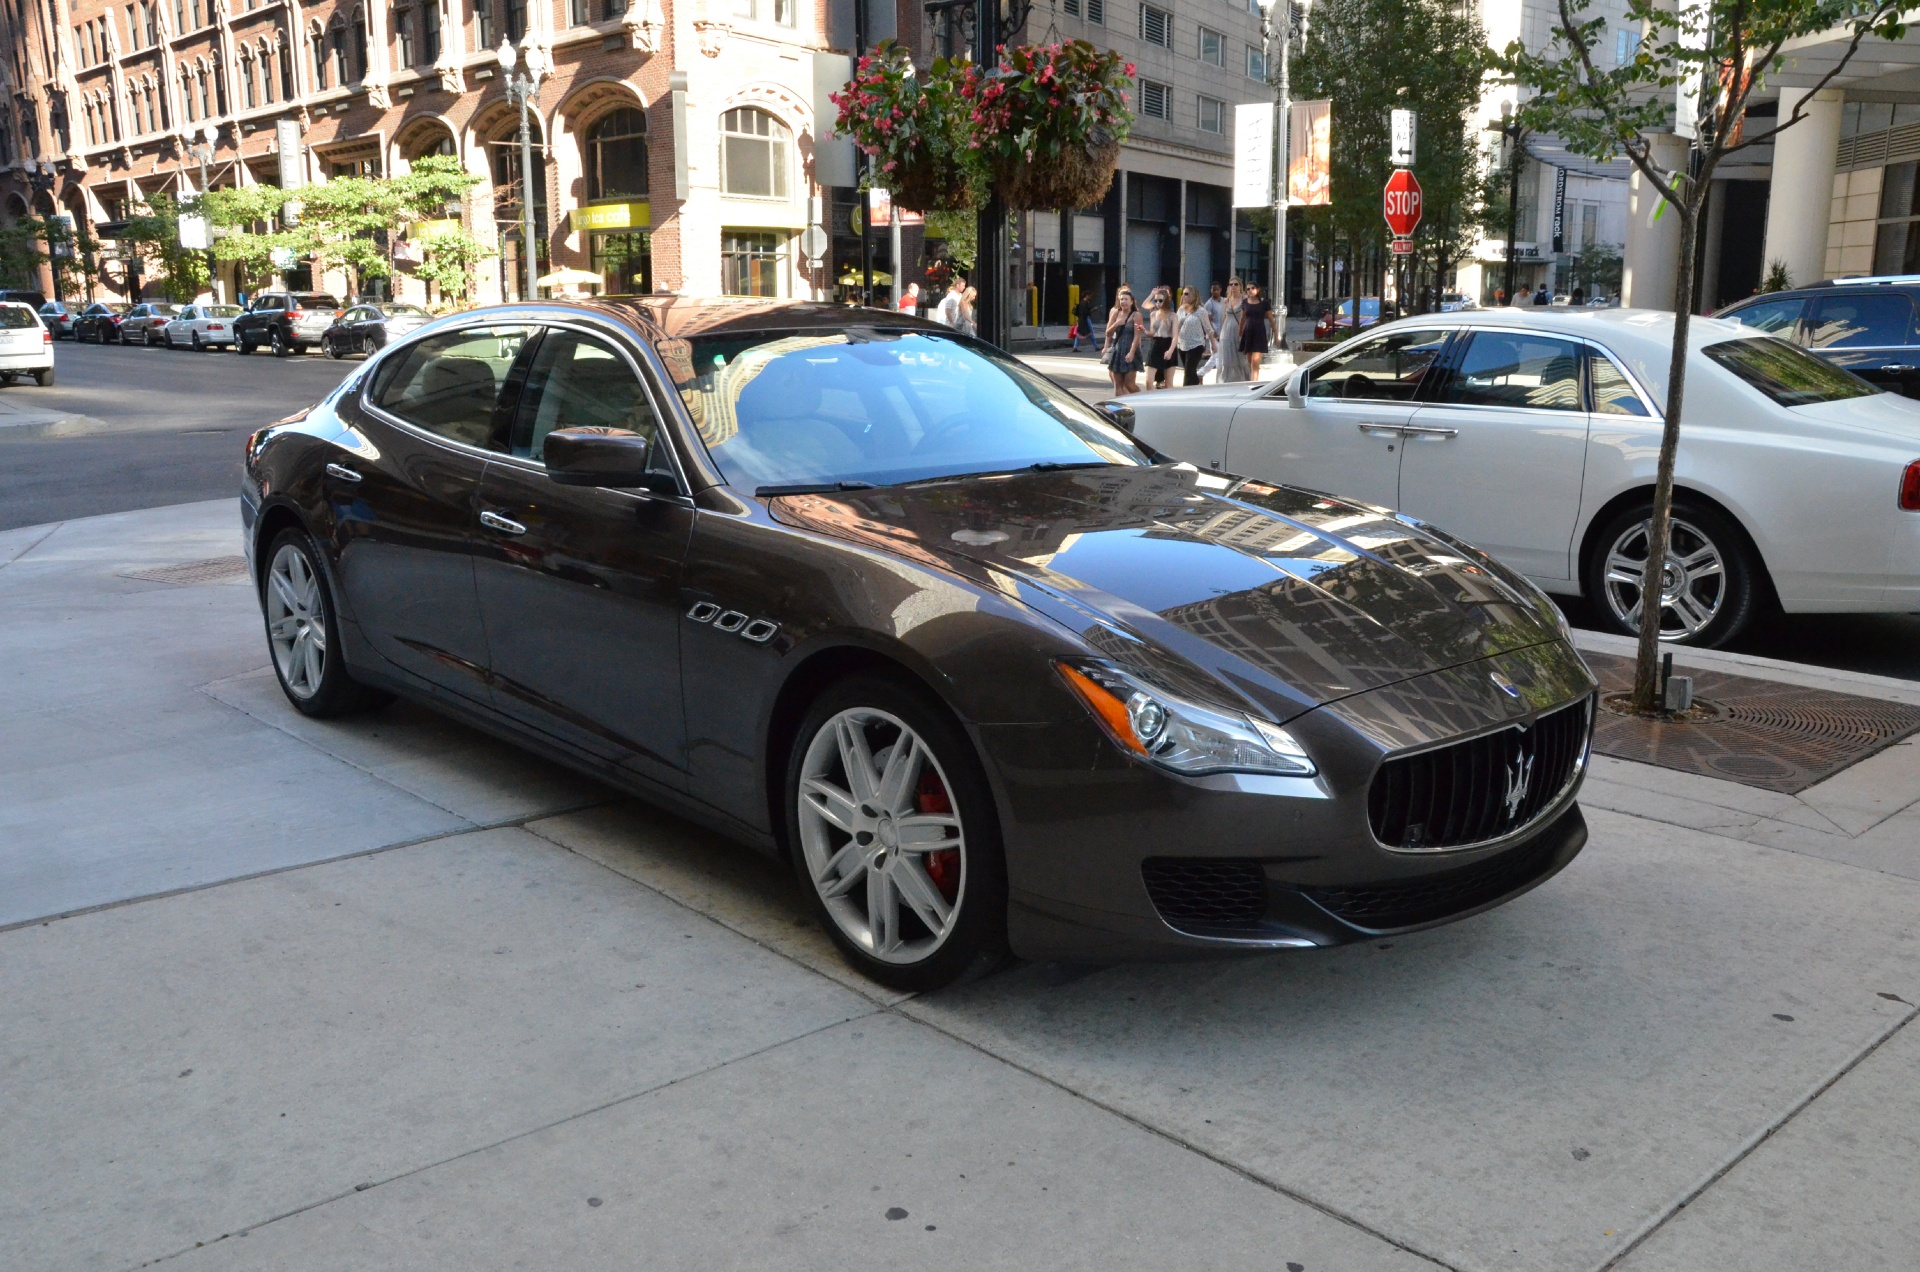 2014 maserati quattroporte sq4 s q4 stock gc1637a for sale near chicago il il maserati dealer. Black Bedroom Furniture Sets. Home Design Ideas